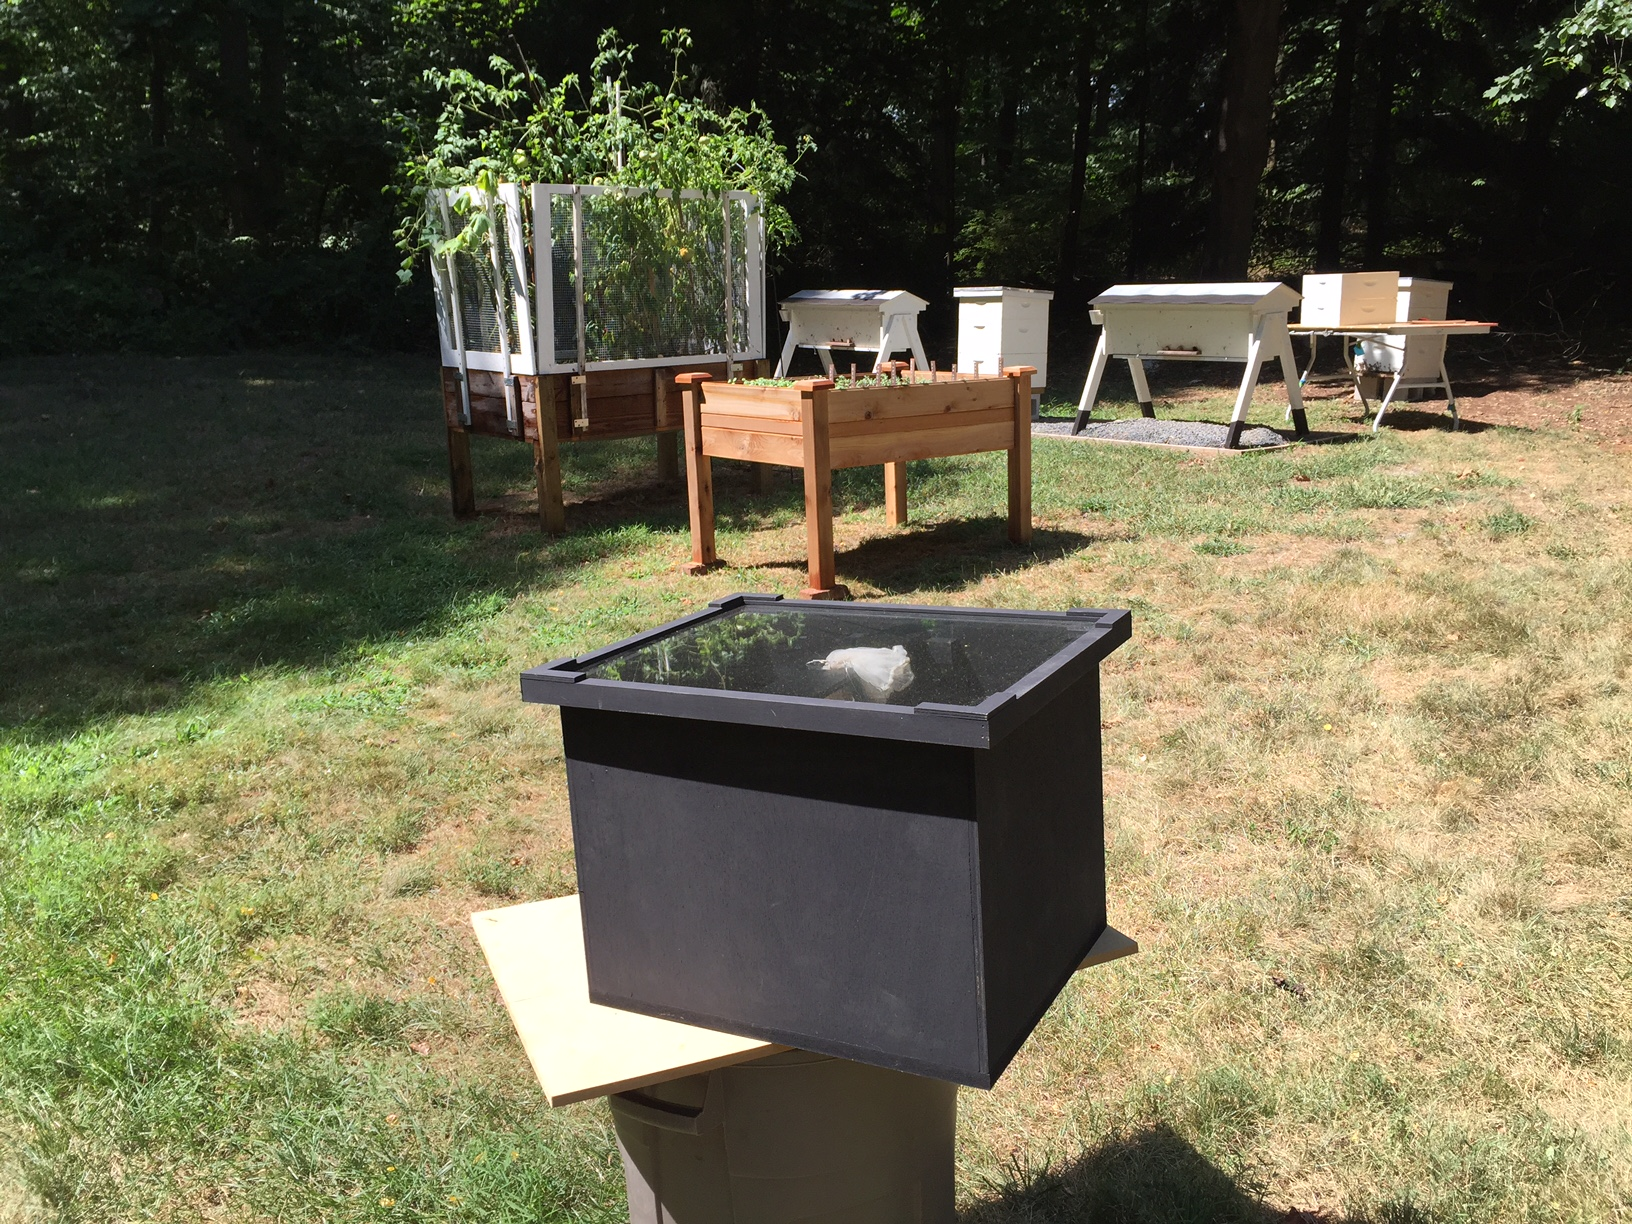 Make a Solar Wax Melter for Beeswax